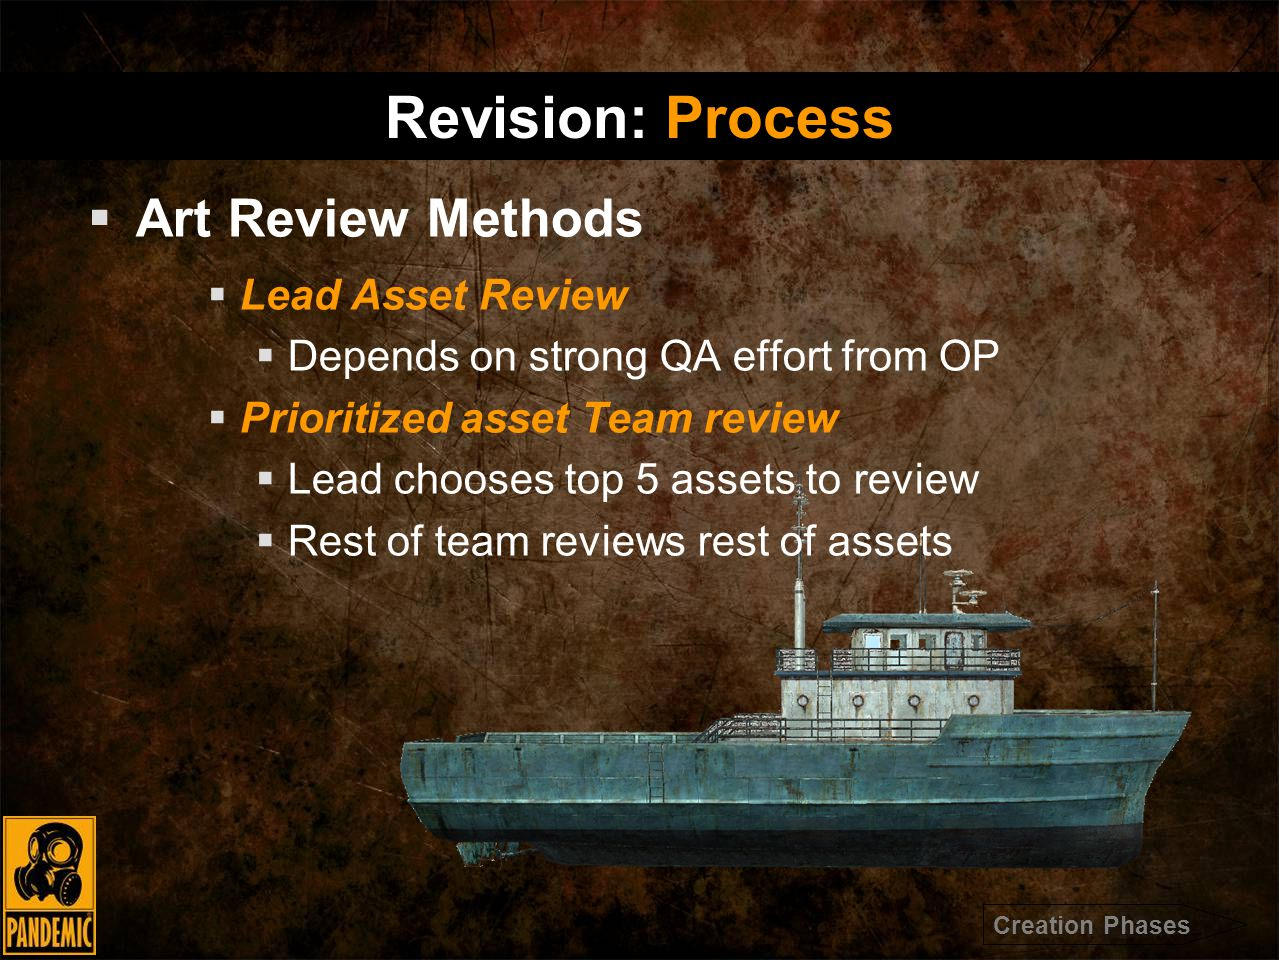  Art Review Methods  Lead Asset Review  Depends on strong QA effort from OP  Prioritized asset Team review  Lead chooses top 5 assets to review  Rest of team reviews rest of assets Revision: Process Creation Phases